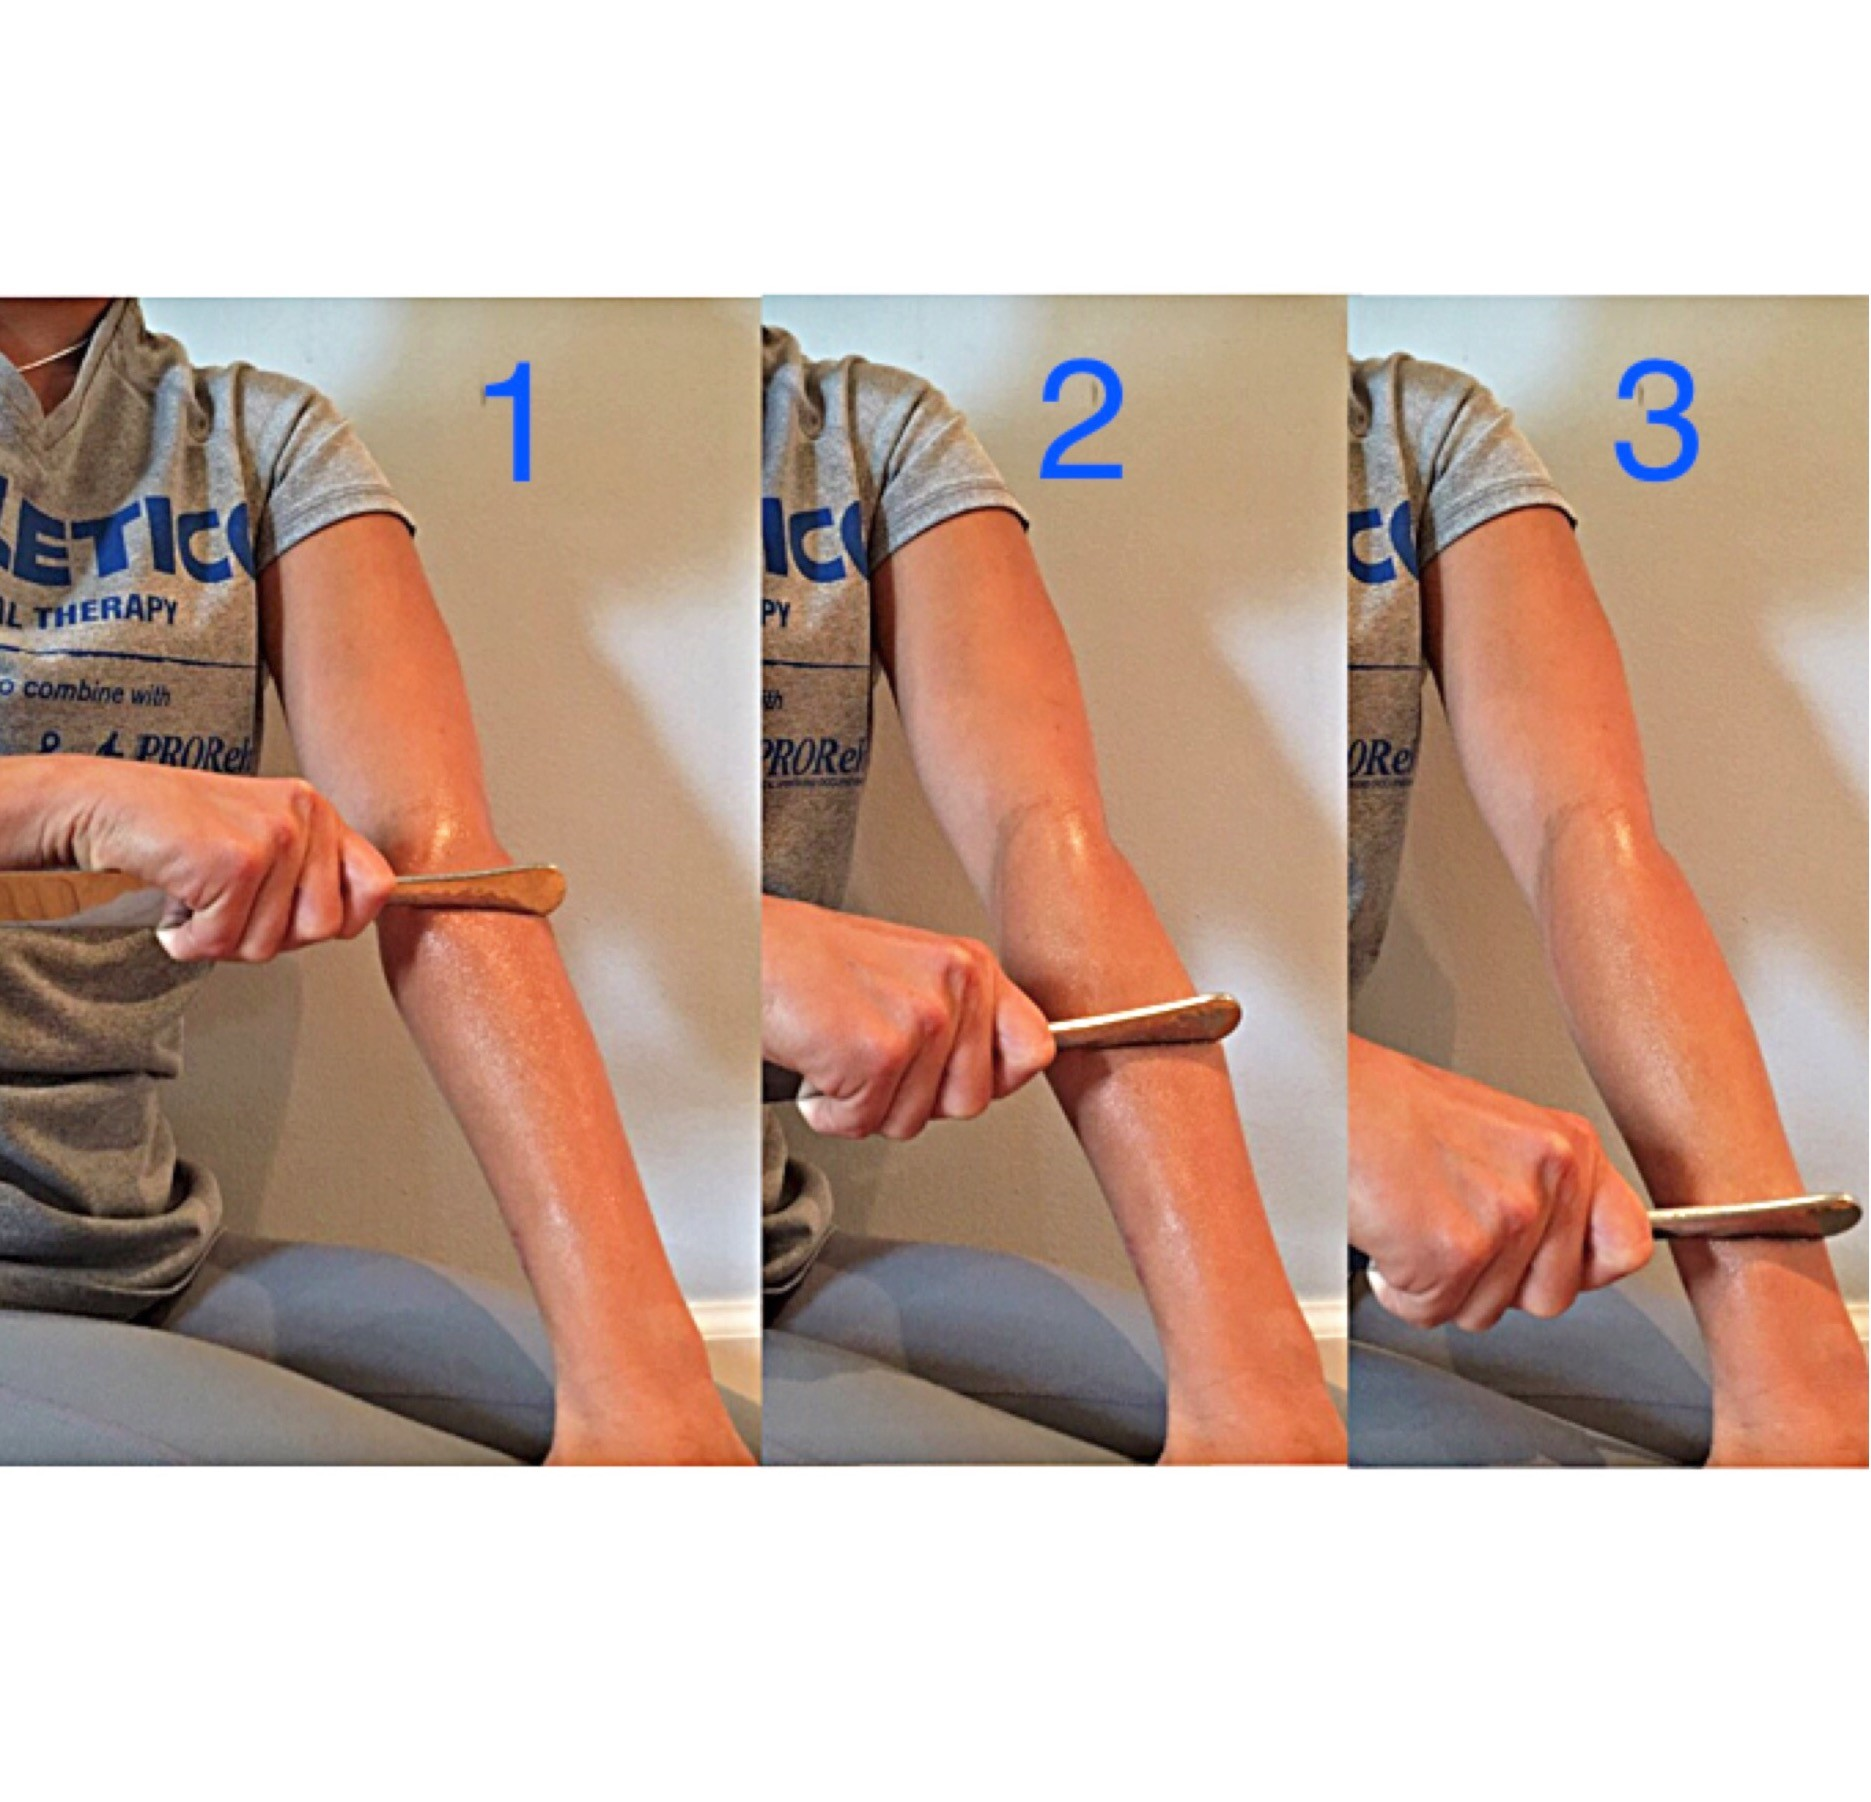 Self Massage for the Forearm